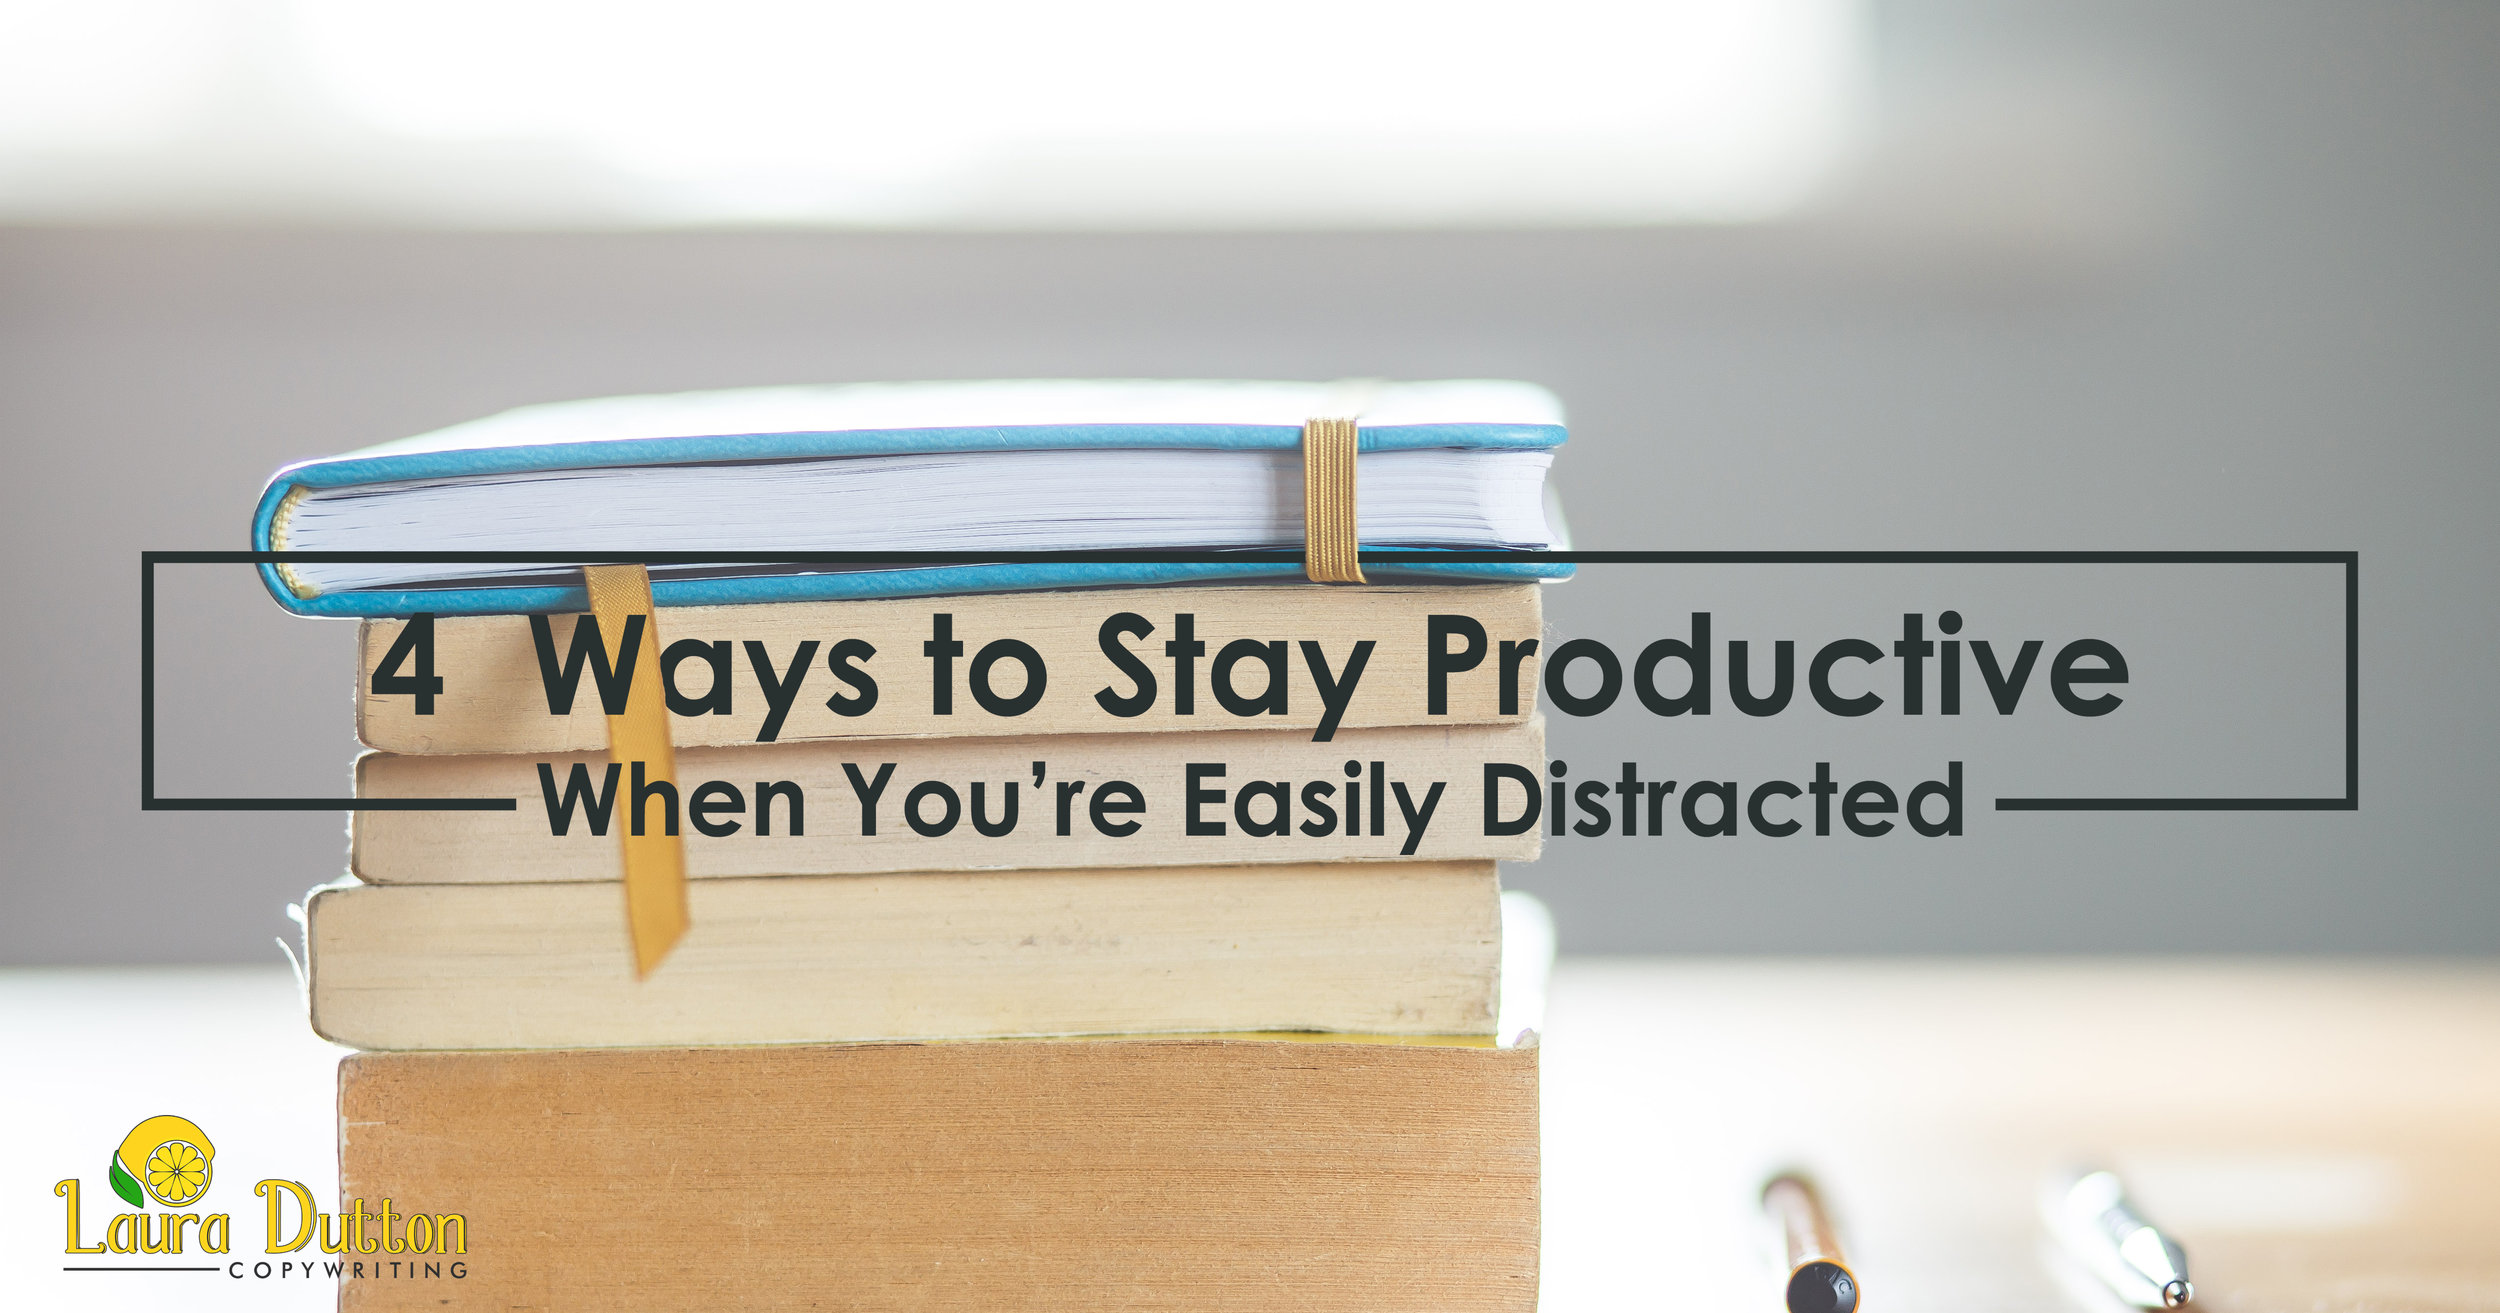 4 Ways to Stay Productive